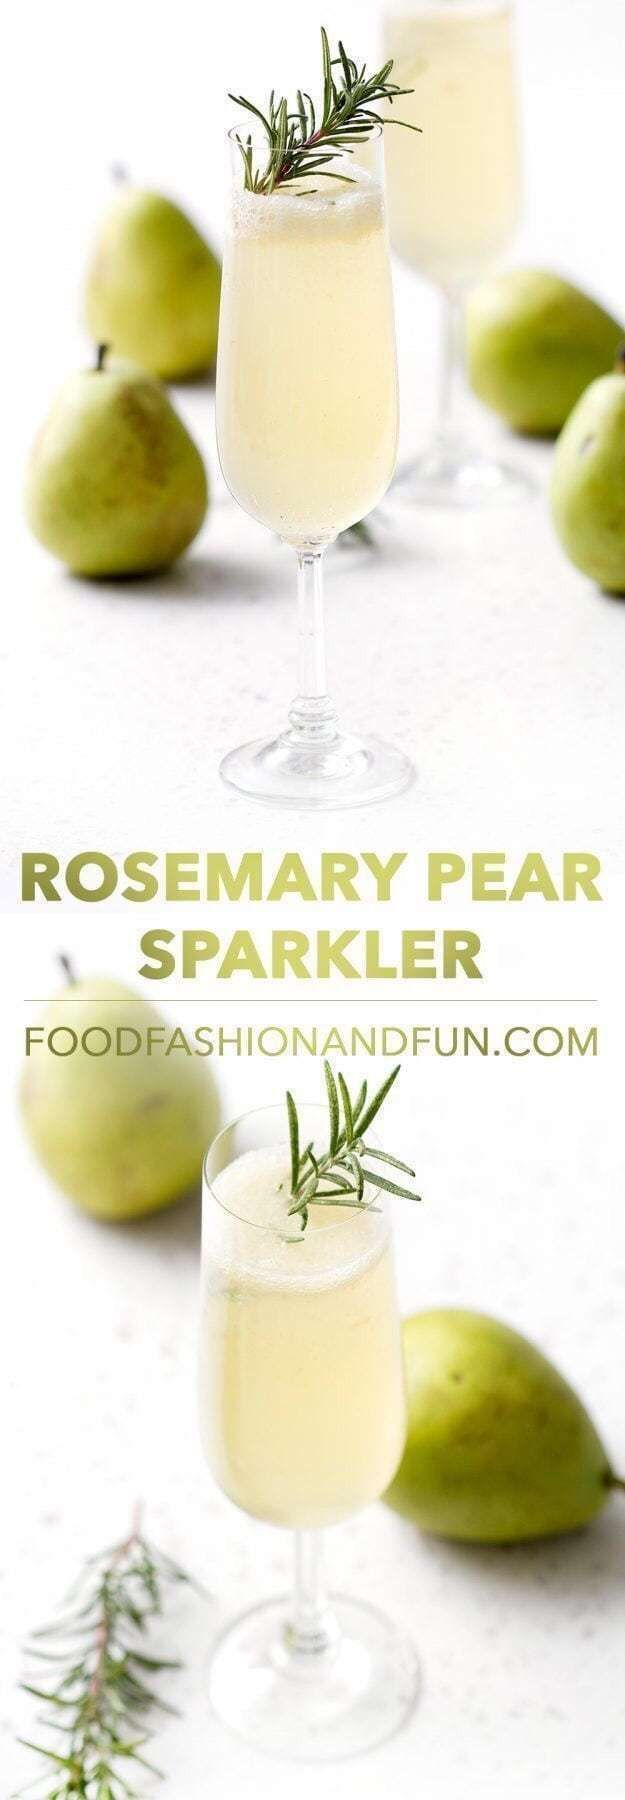 Photo of 51 Champagne Cocktail Recipes | Chef Health – #ChampagneCocktailRecipes #C …